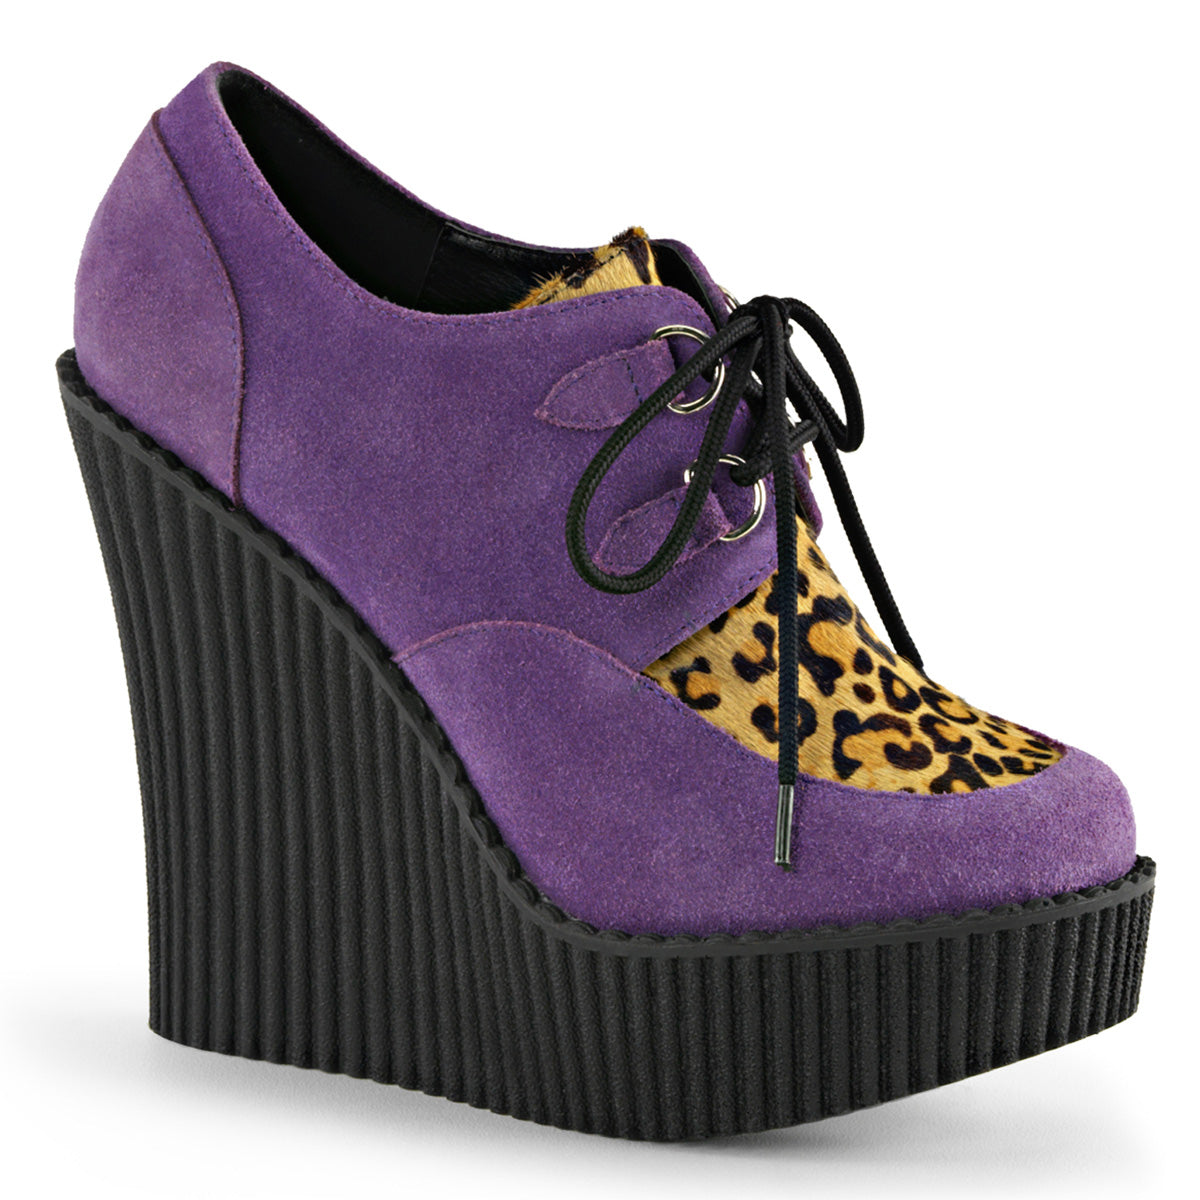 "5 1/4"" Wedge PF Lace-Up Creeper w/Leopard Print Accents"